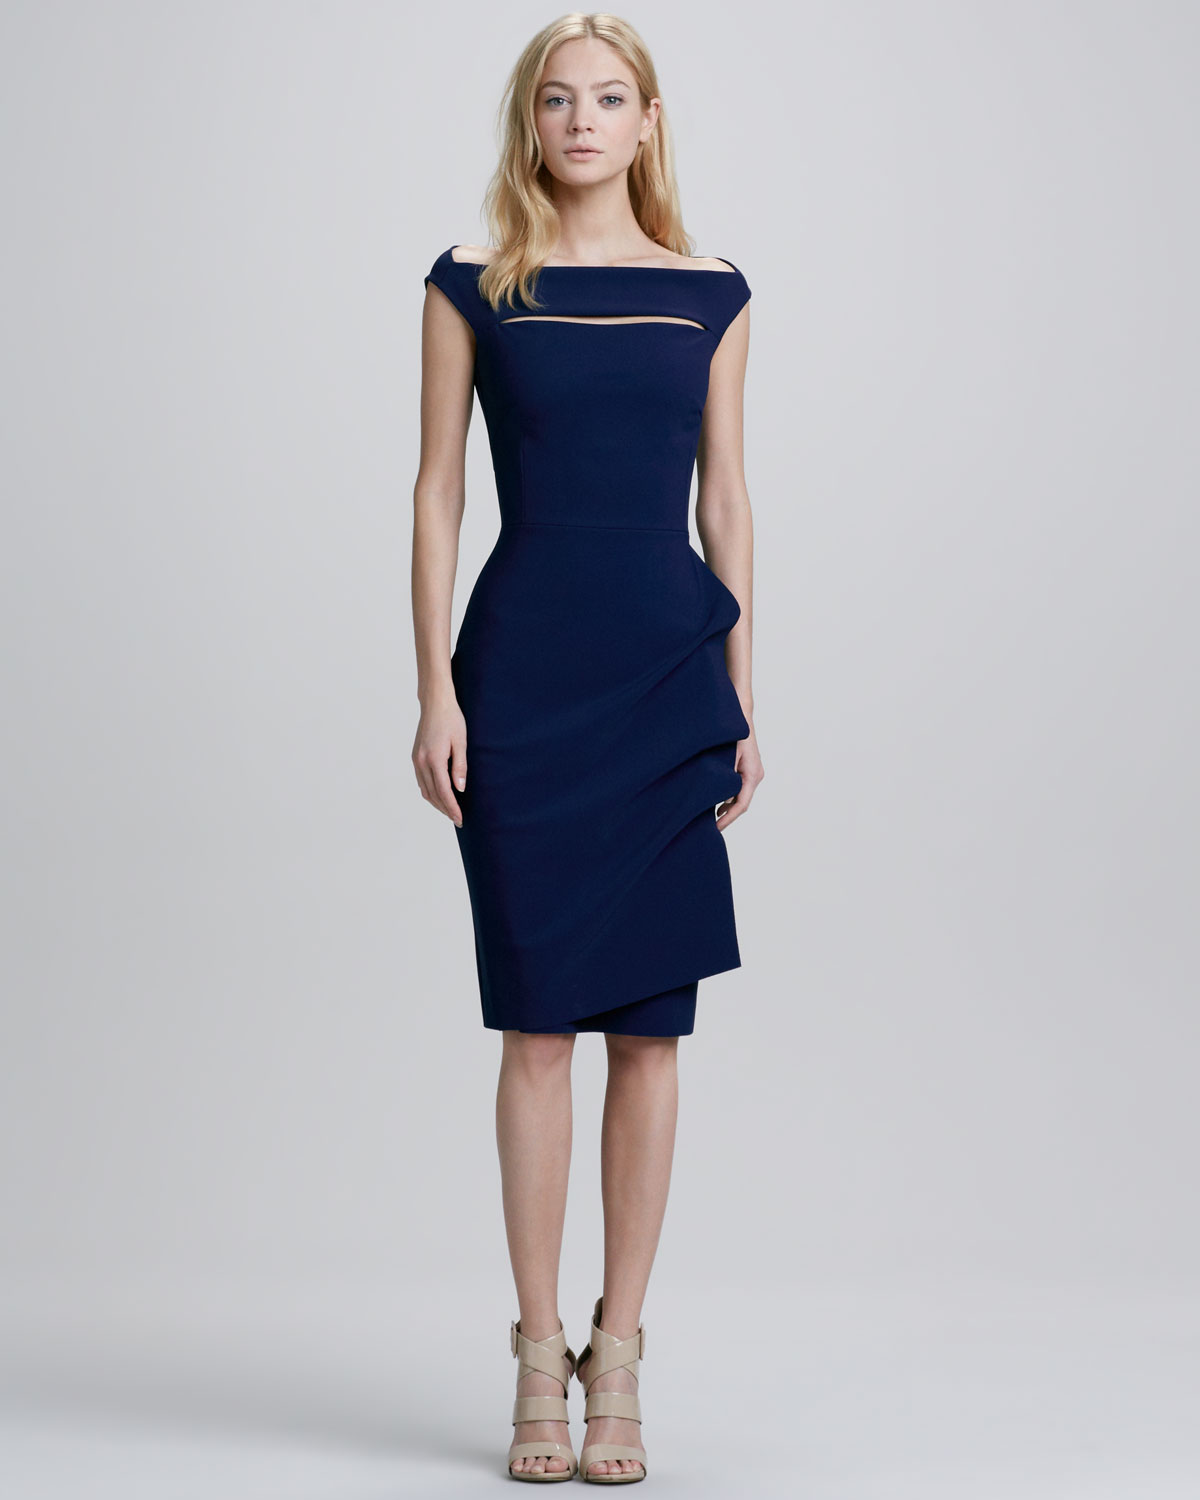 Chiara Boni The Most Popular Dress In America: La Petite Robe Di Chiara Boni Melania Capsleeve